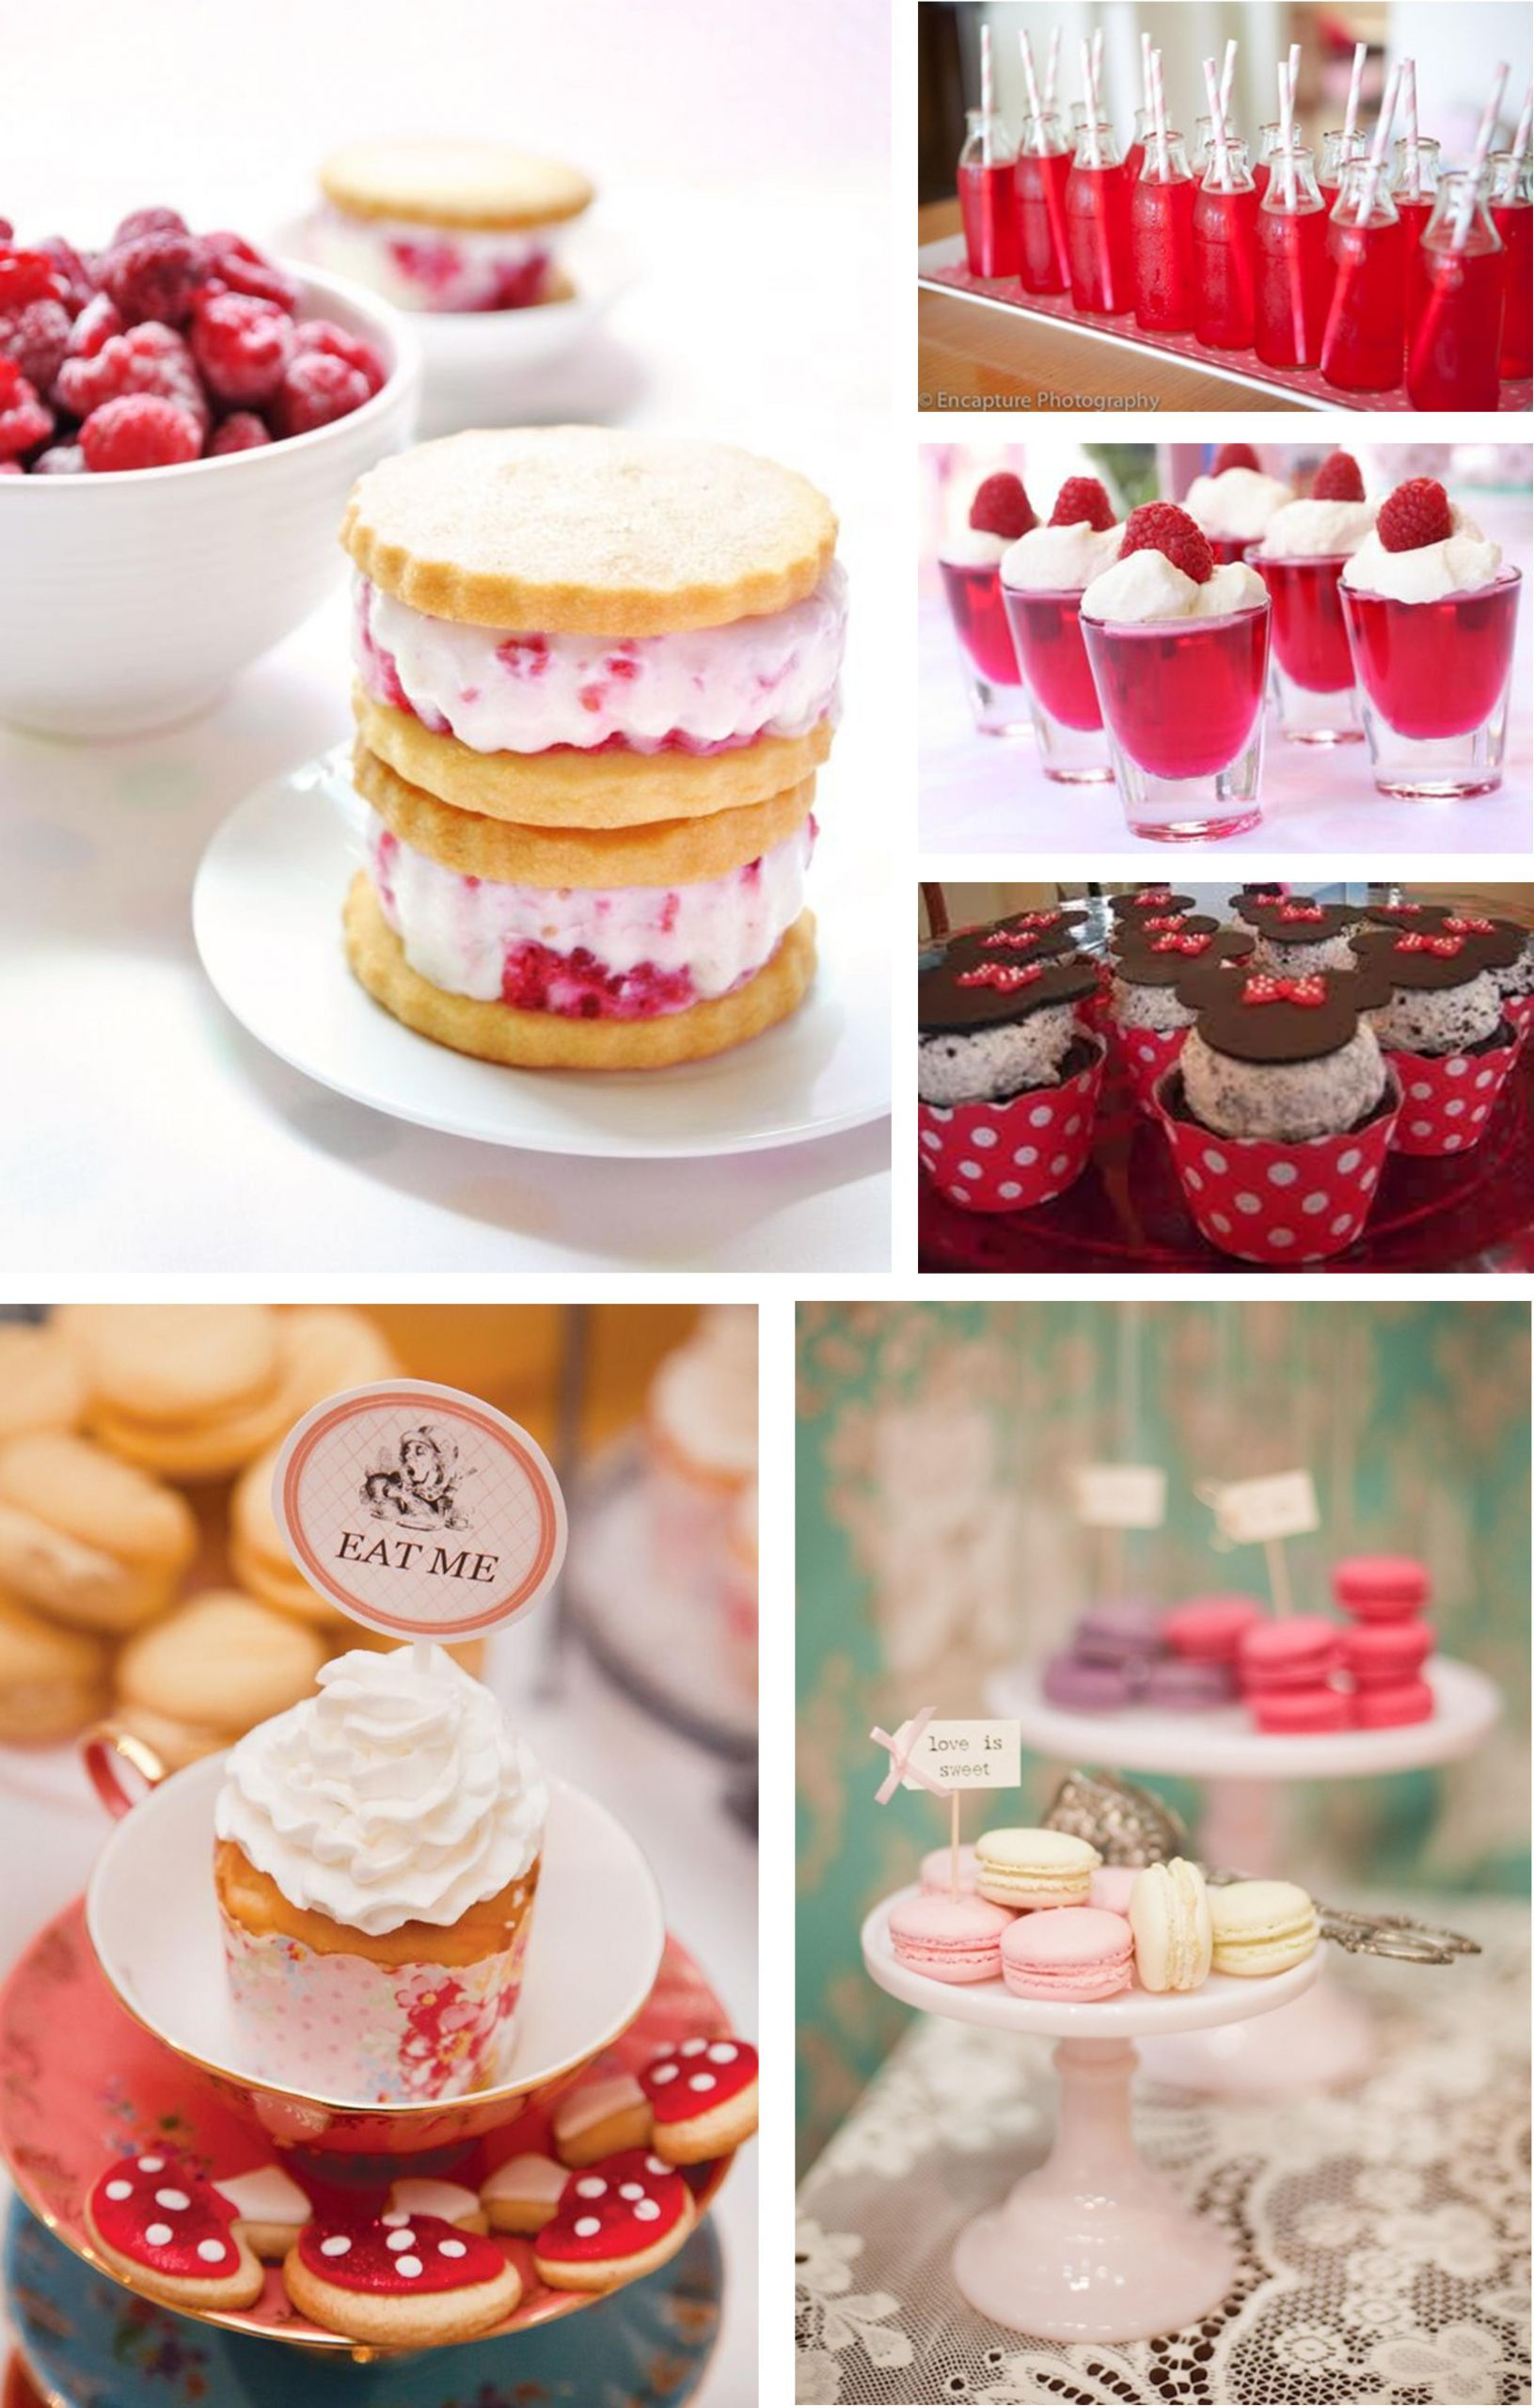 Pink Party Food Ideas  My little vintage caravan Pink party food ideas